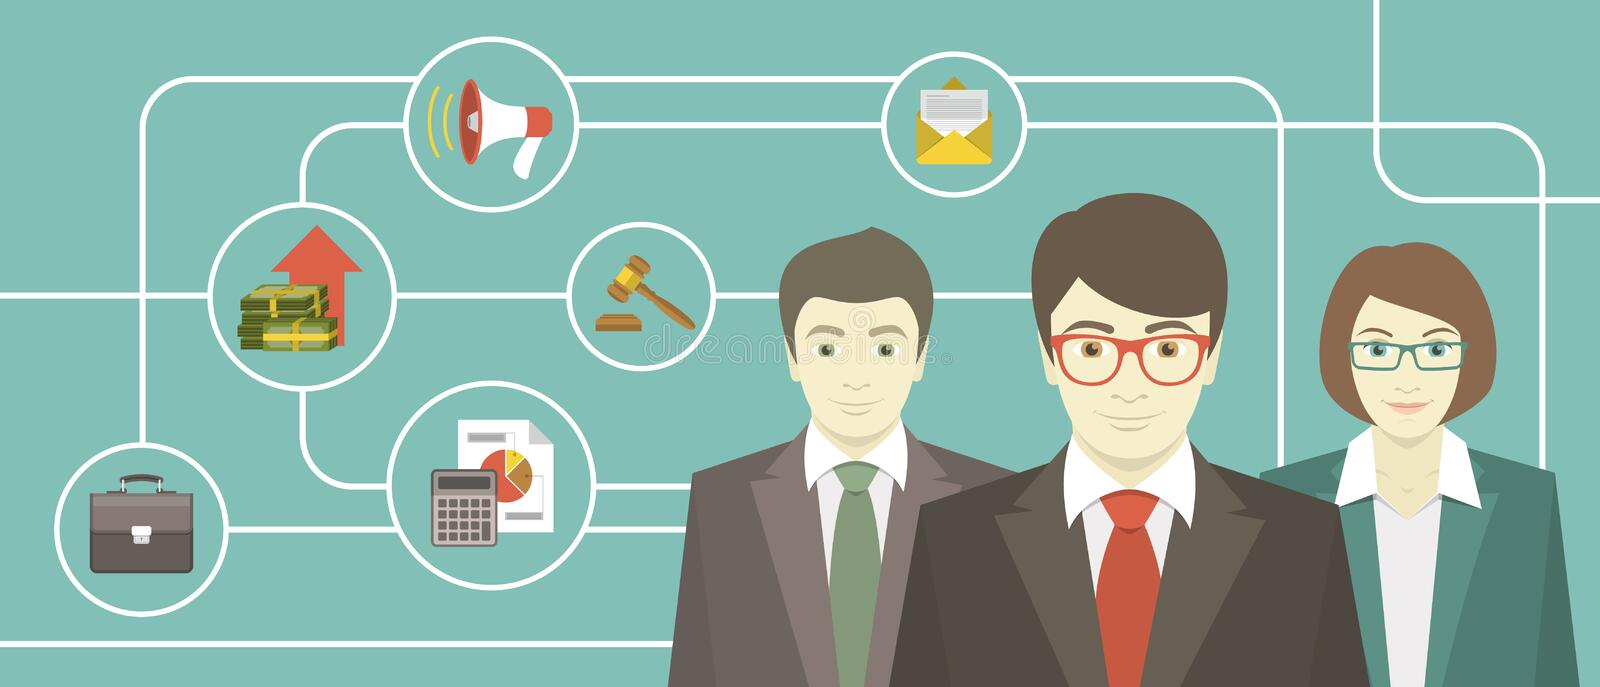 Team of Professionals stock illustration